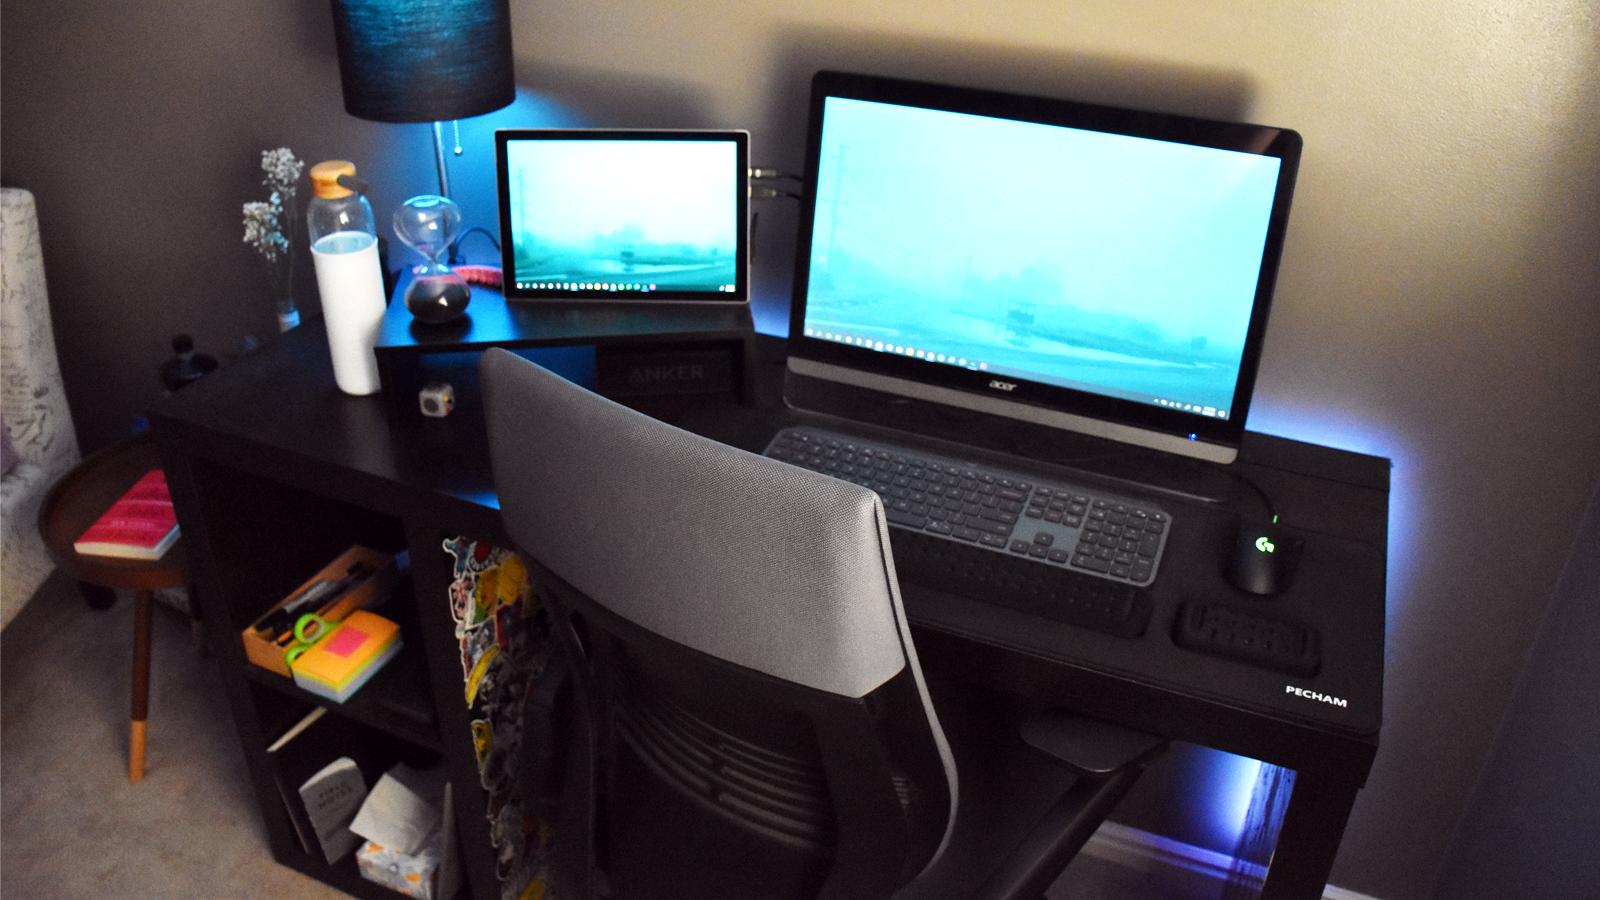 Suzanne's setup, with a Surface Pro and one monitor